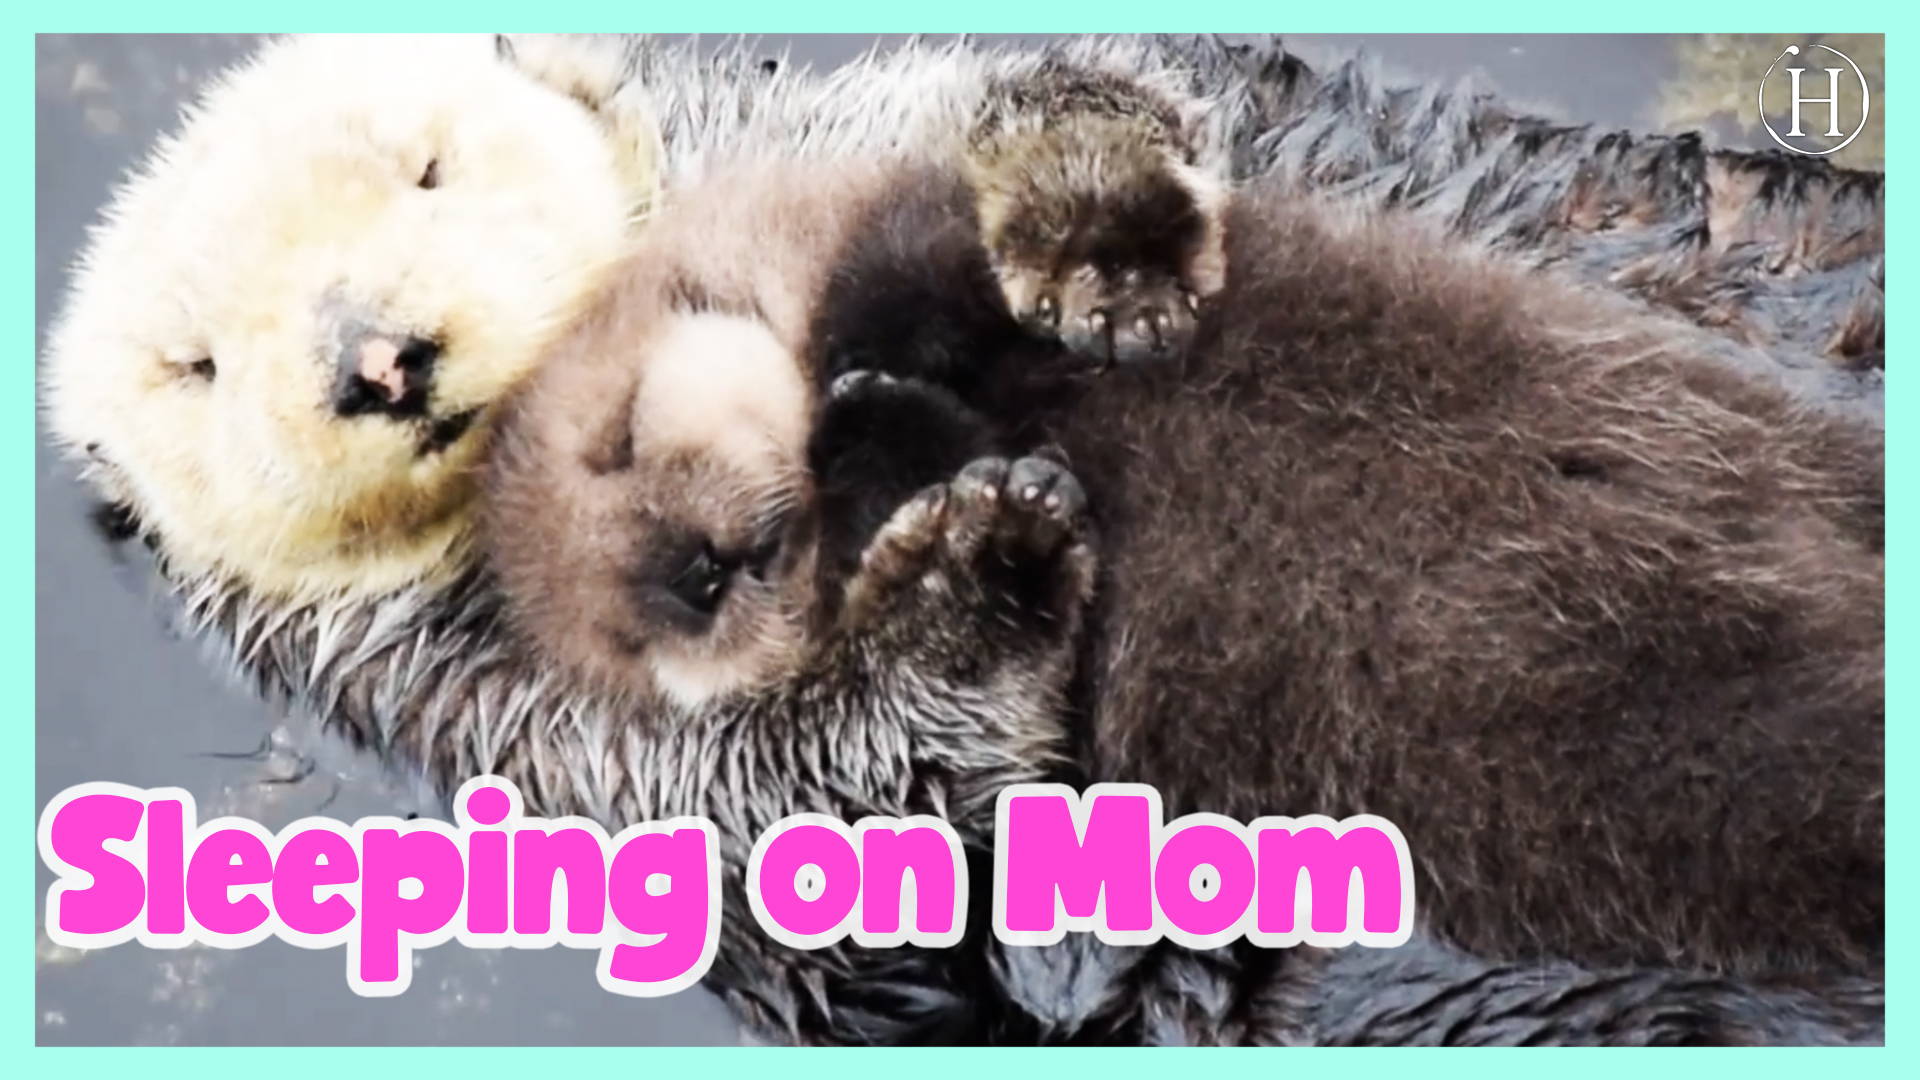 1 Day Old Sea Otter Pup Trying to Sleep on Mom | Humanity Life